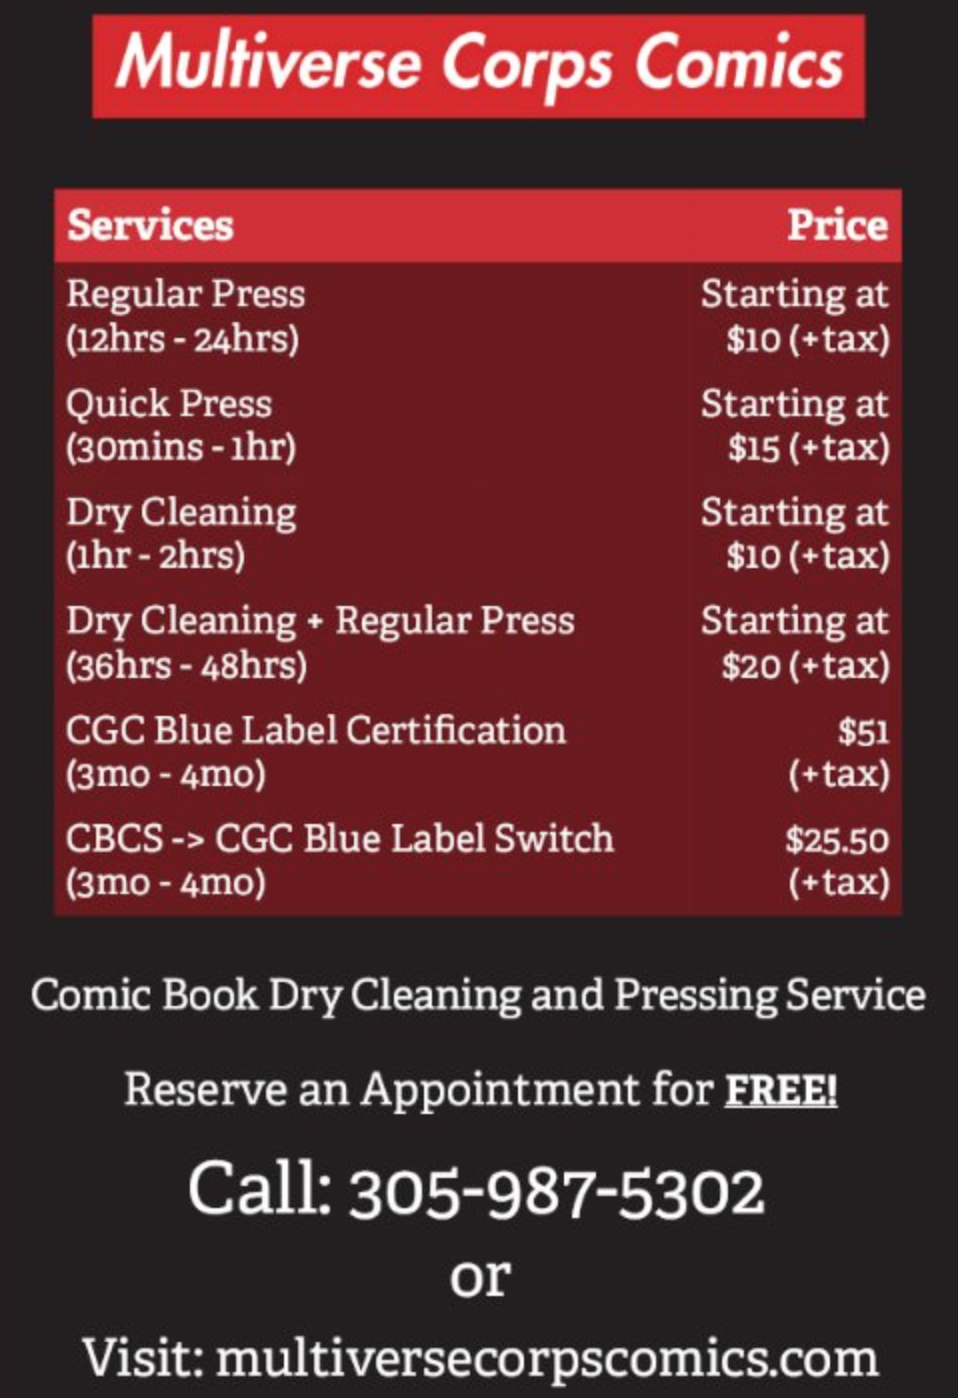 Comic Book Pressing and Dry Cleaning Services Starts October 16th. - In store walk-ins are welcome and available as well.